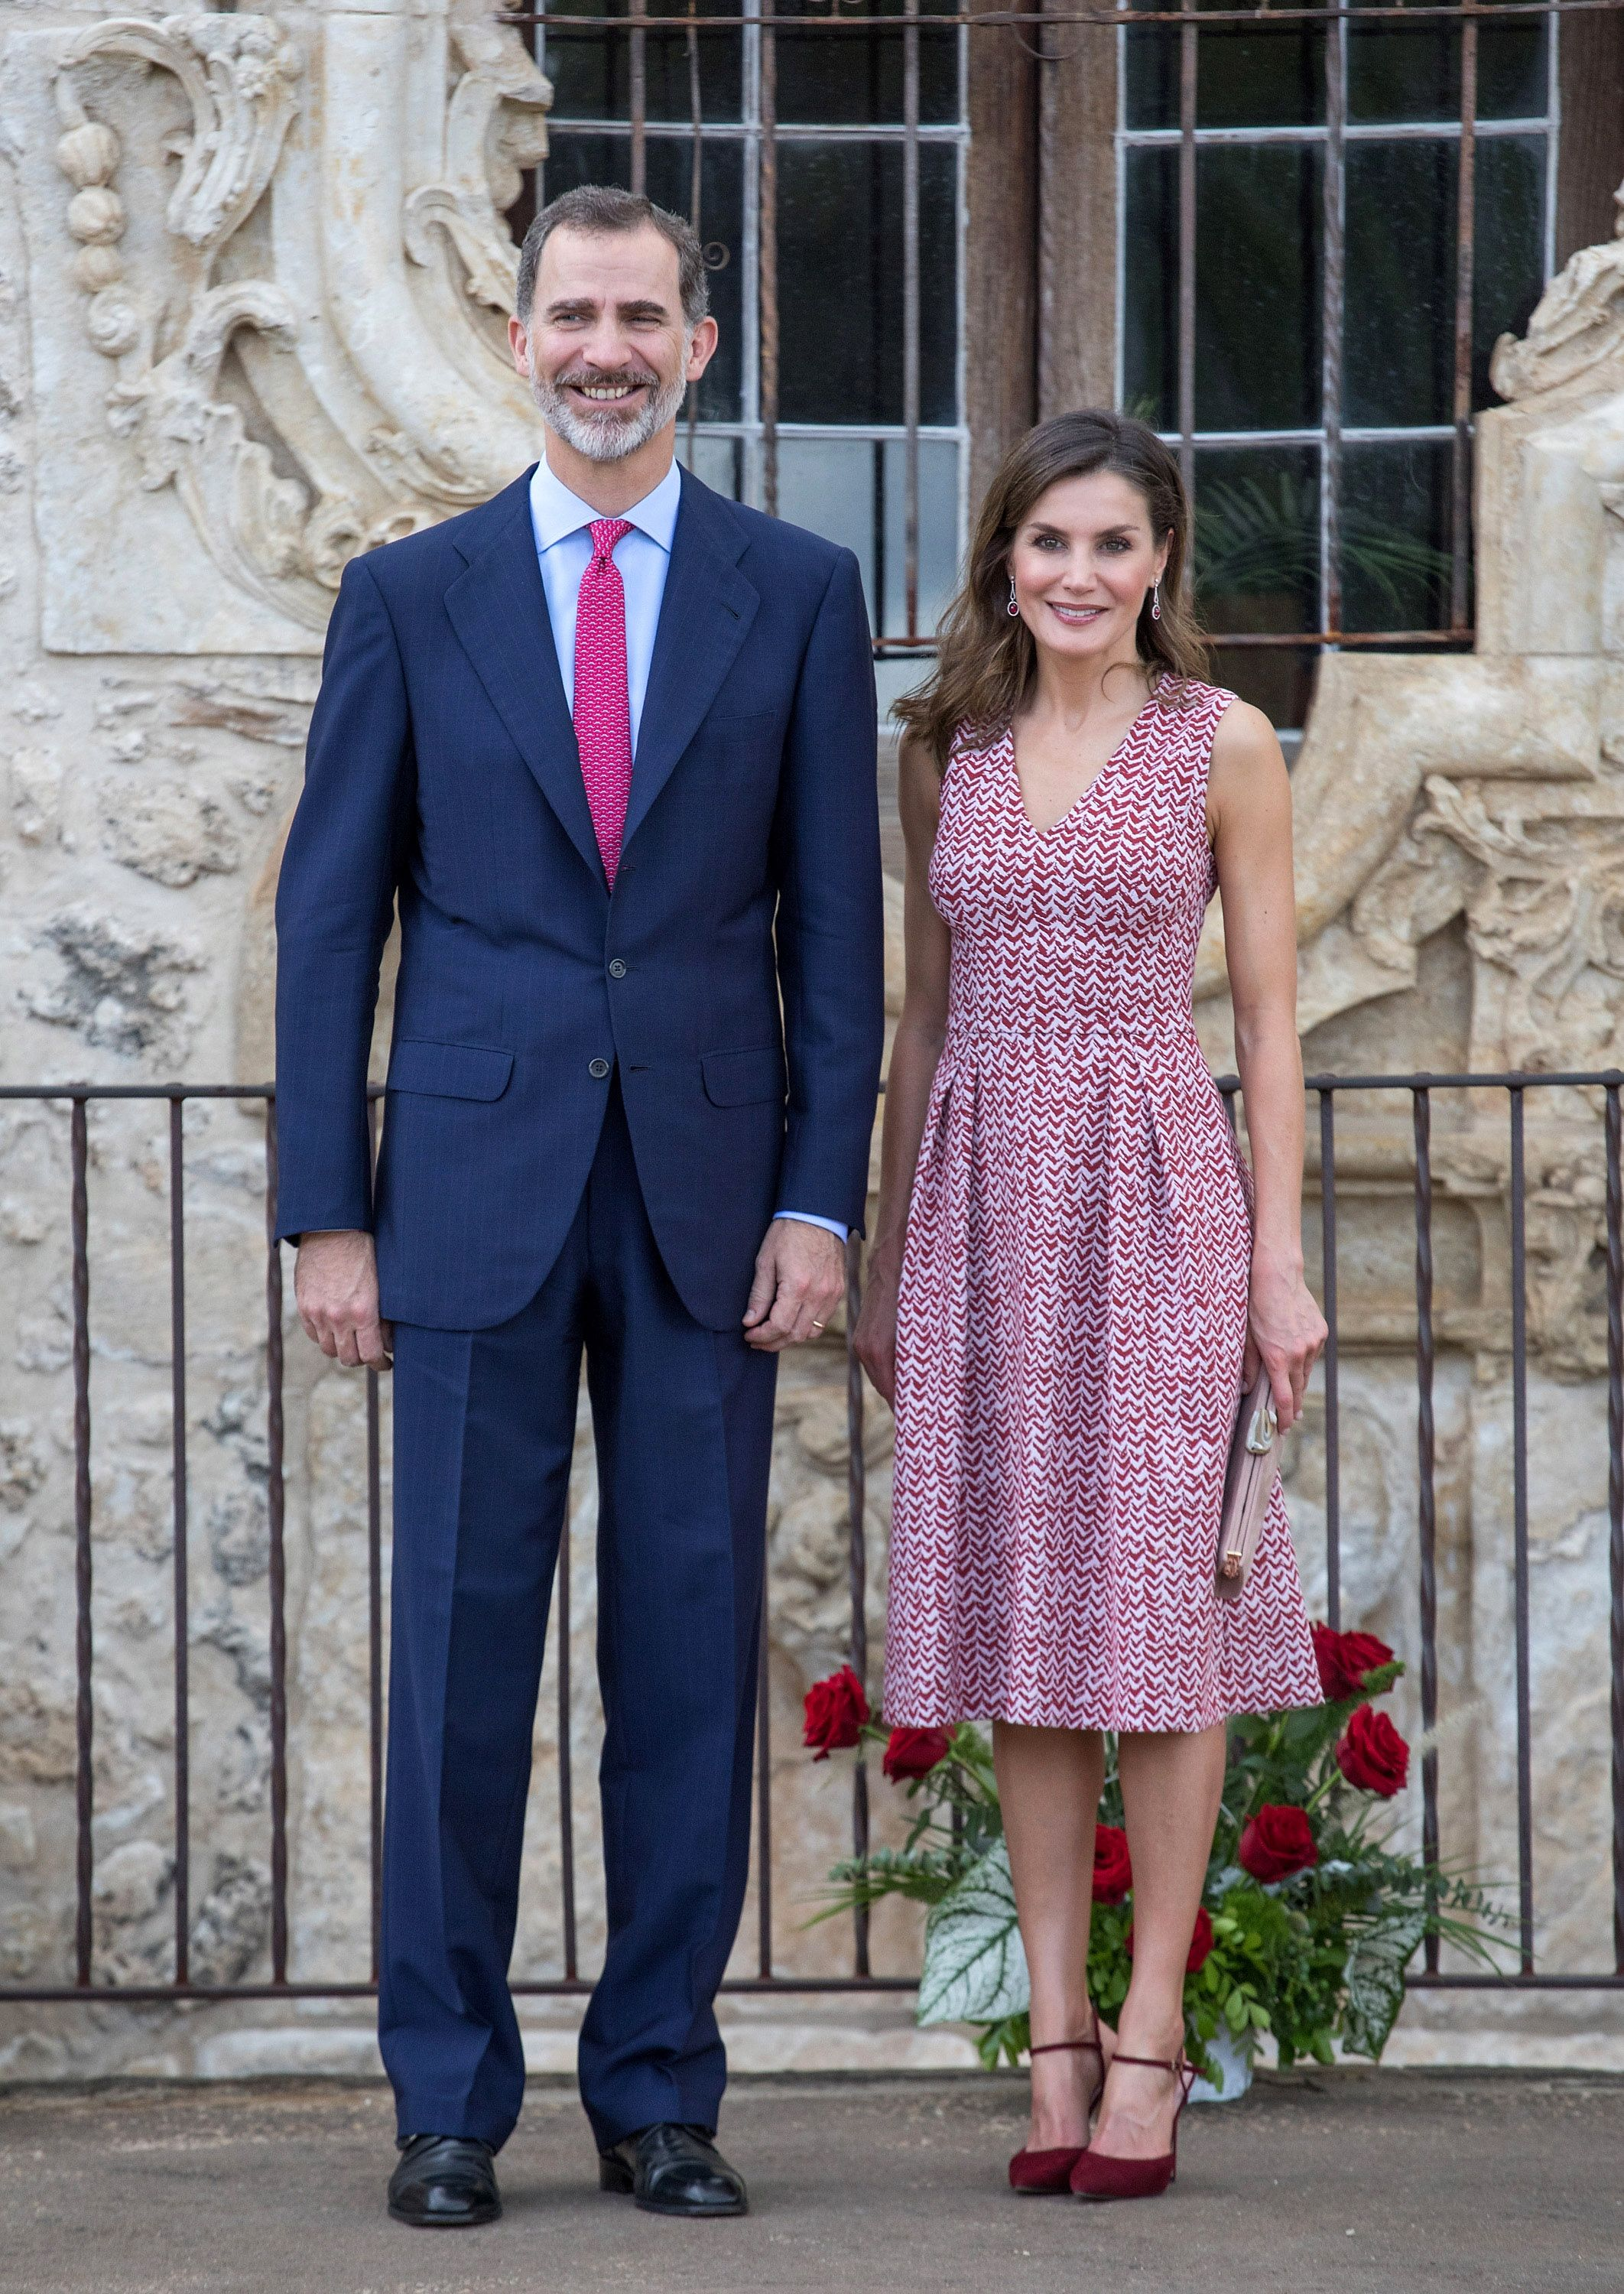 90fcbf2c King Felipe and Queen Letizia Visit San Antonio and New Orleans - King and  Queen of Spain Tour United States